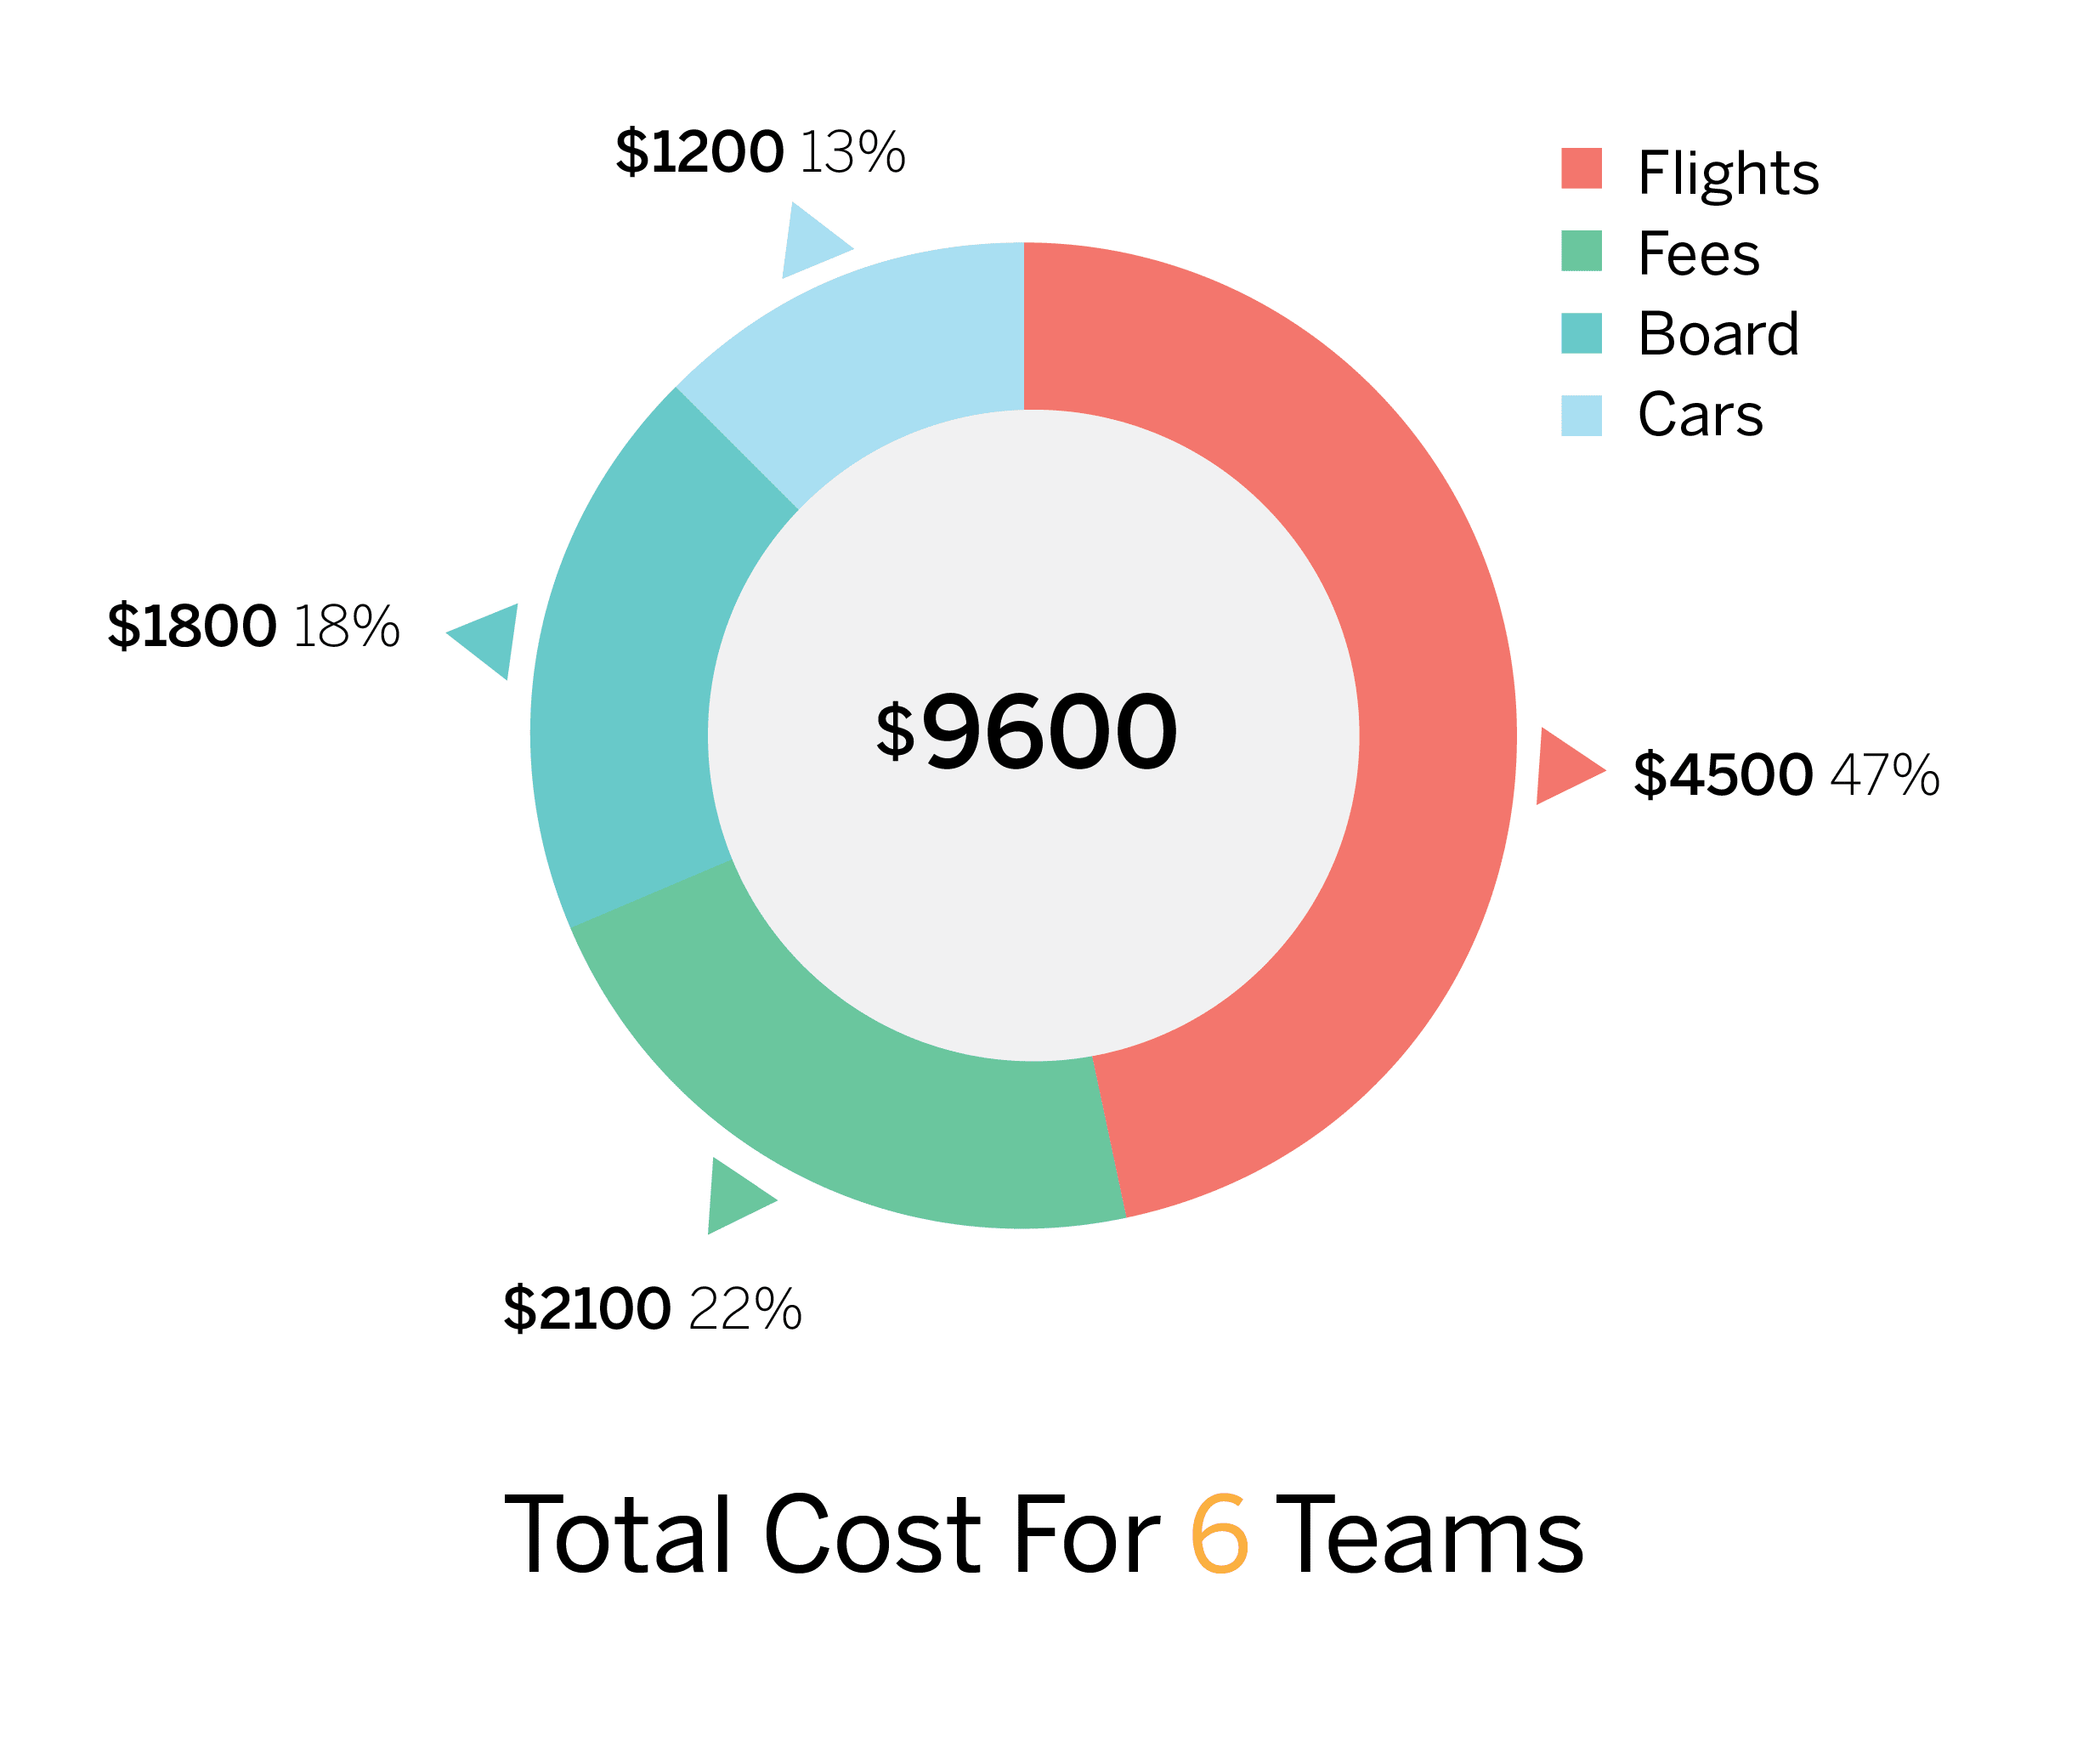 Graphic showing cost breakdown; of $9,600 total, $4,500 will go to flights, $2,100 to fees, $1,800 to hotel costs, and $1,200 to rental cars